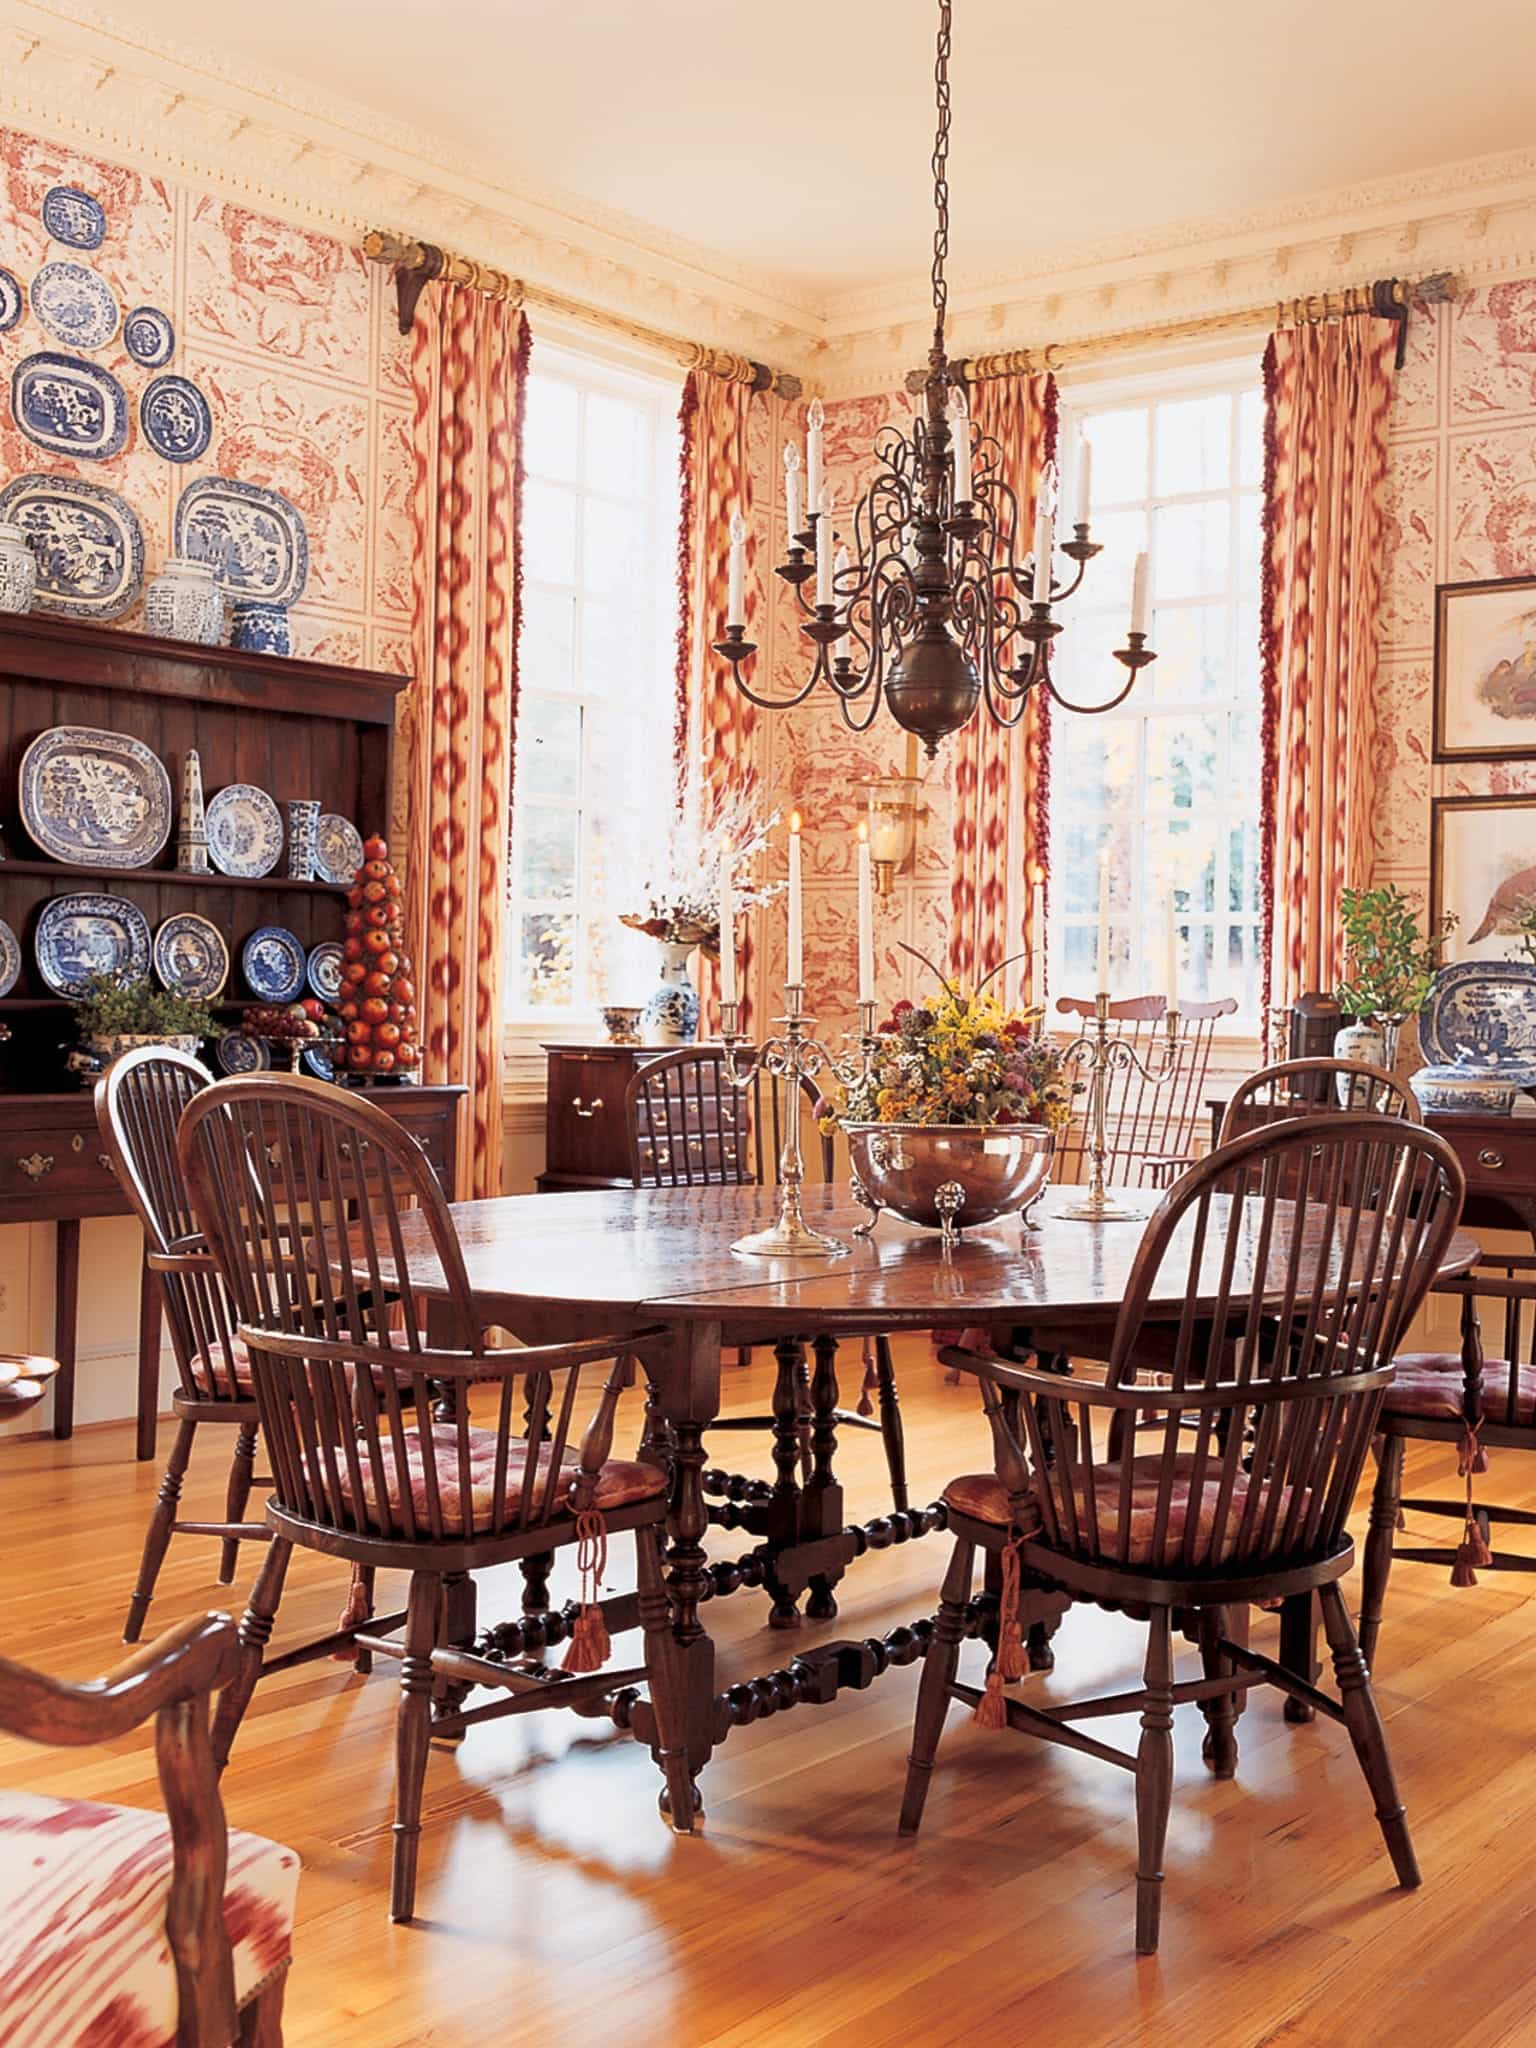 Romantic Dining Room In French Country Interior Style (View 3 of 21)